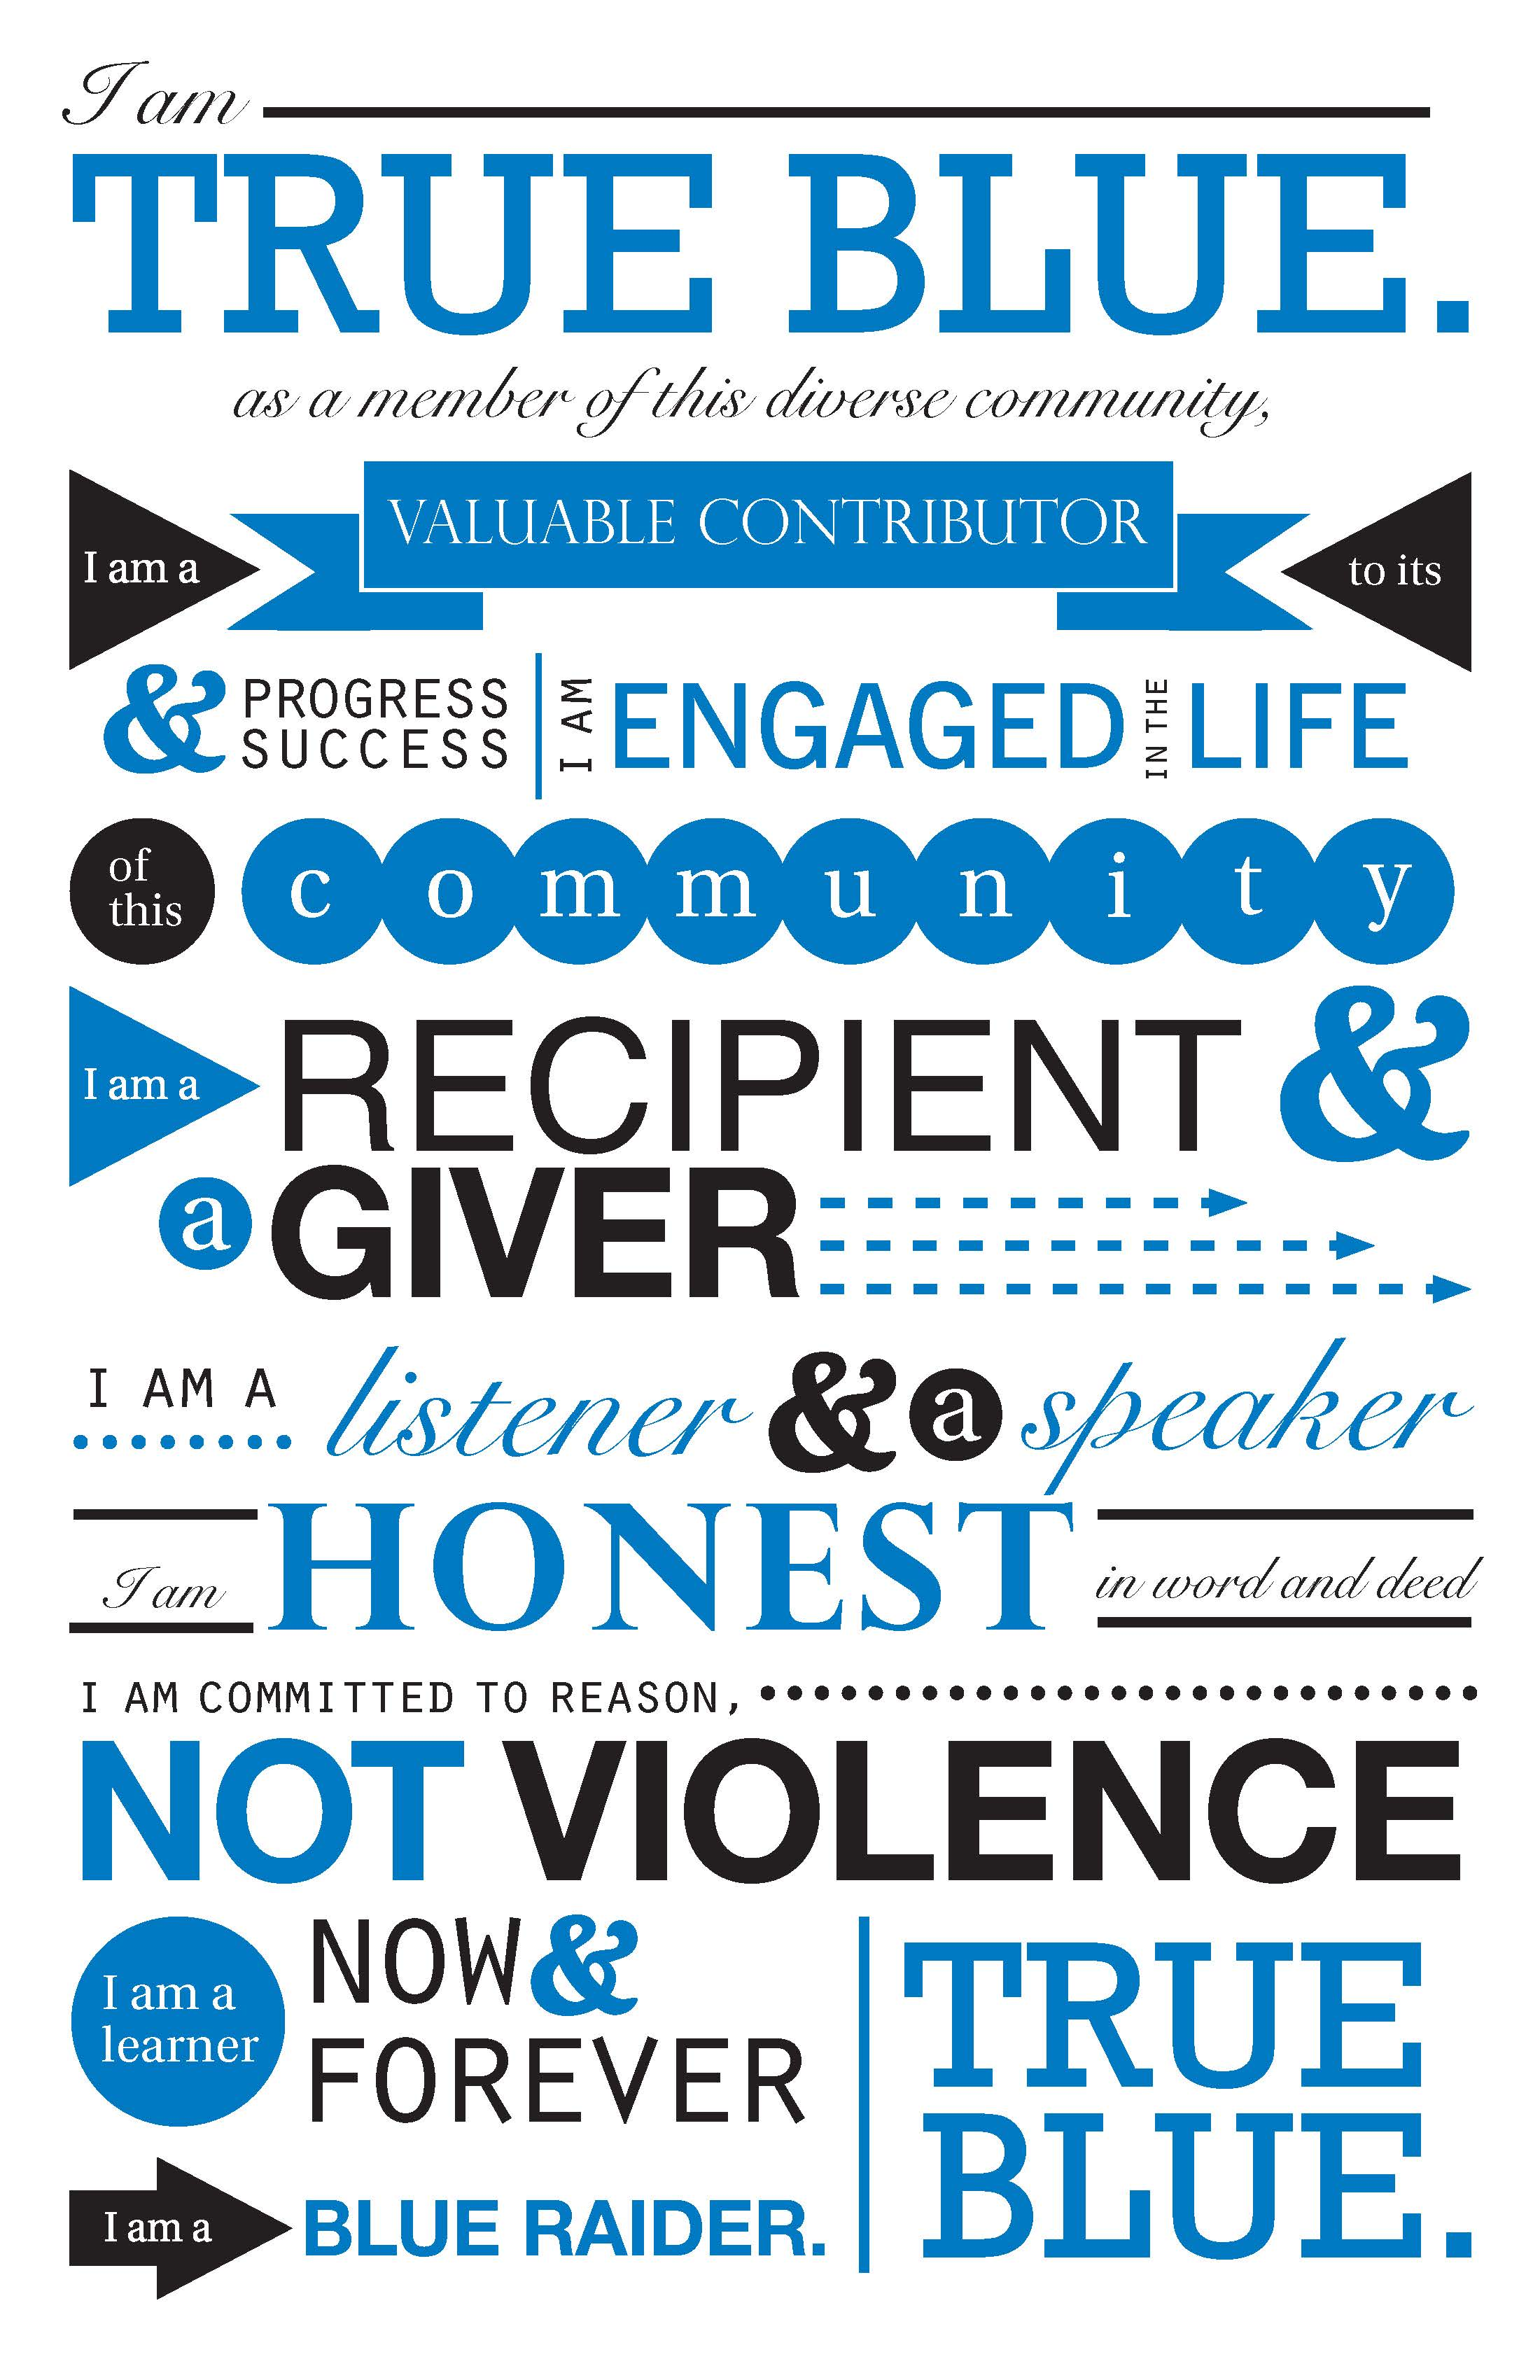 "Stylized poster reading ""I am True Blue. As a member of the diverse community, I am a valuable contributor to its progress and success. I am engaged in the life of this community. I am a recipient and a giver. I am a listener and a speaker. I am honest in word and deed. I am committed to reason, not violence. I am a learner now and forever. I am a Blue Raider. True Blue."